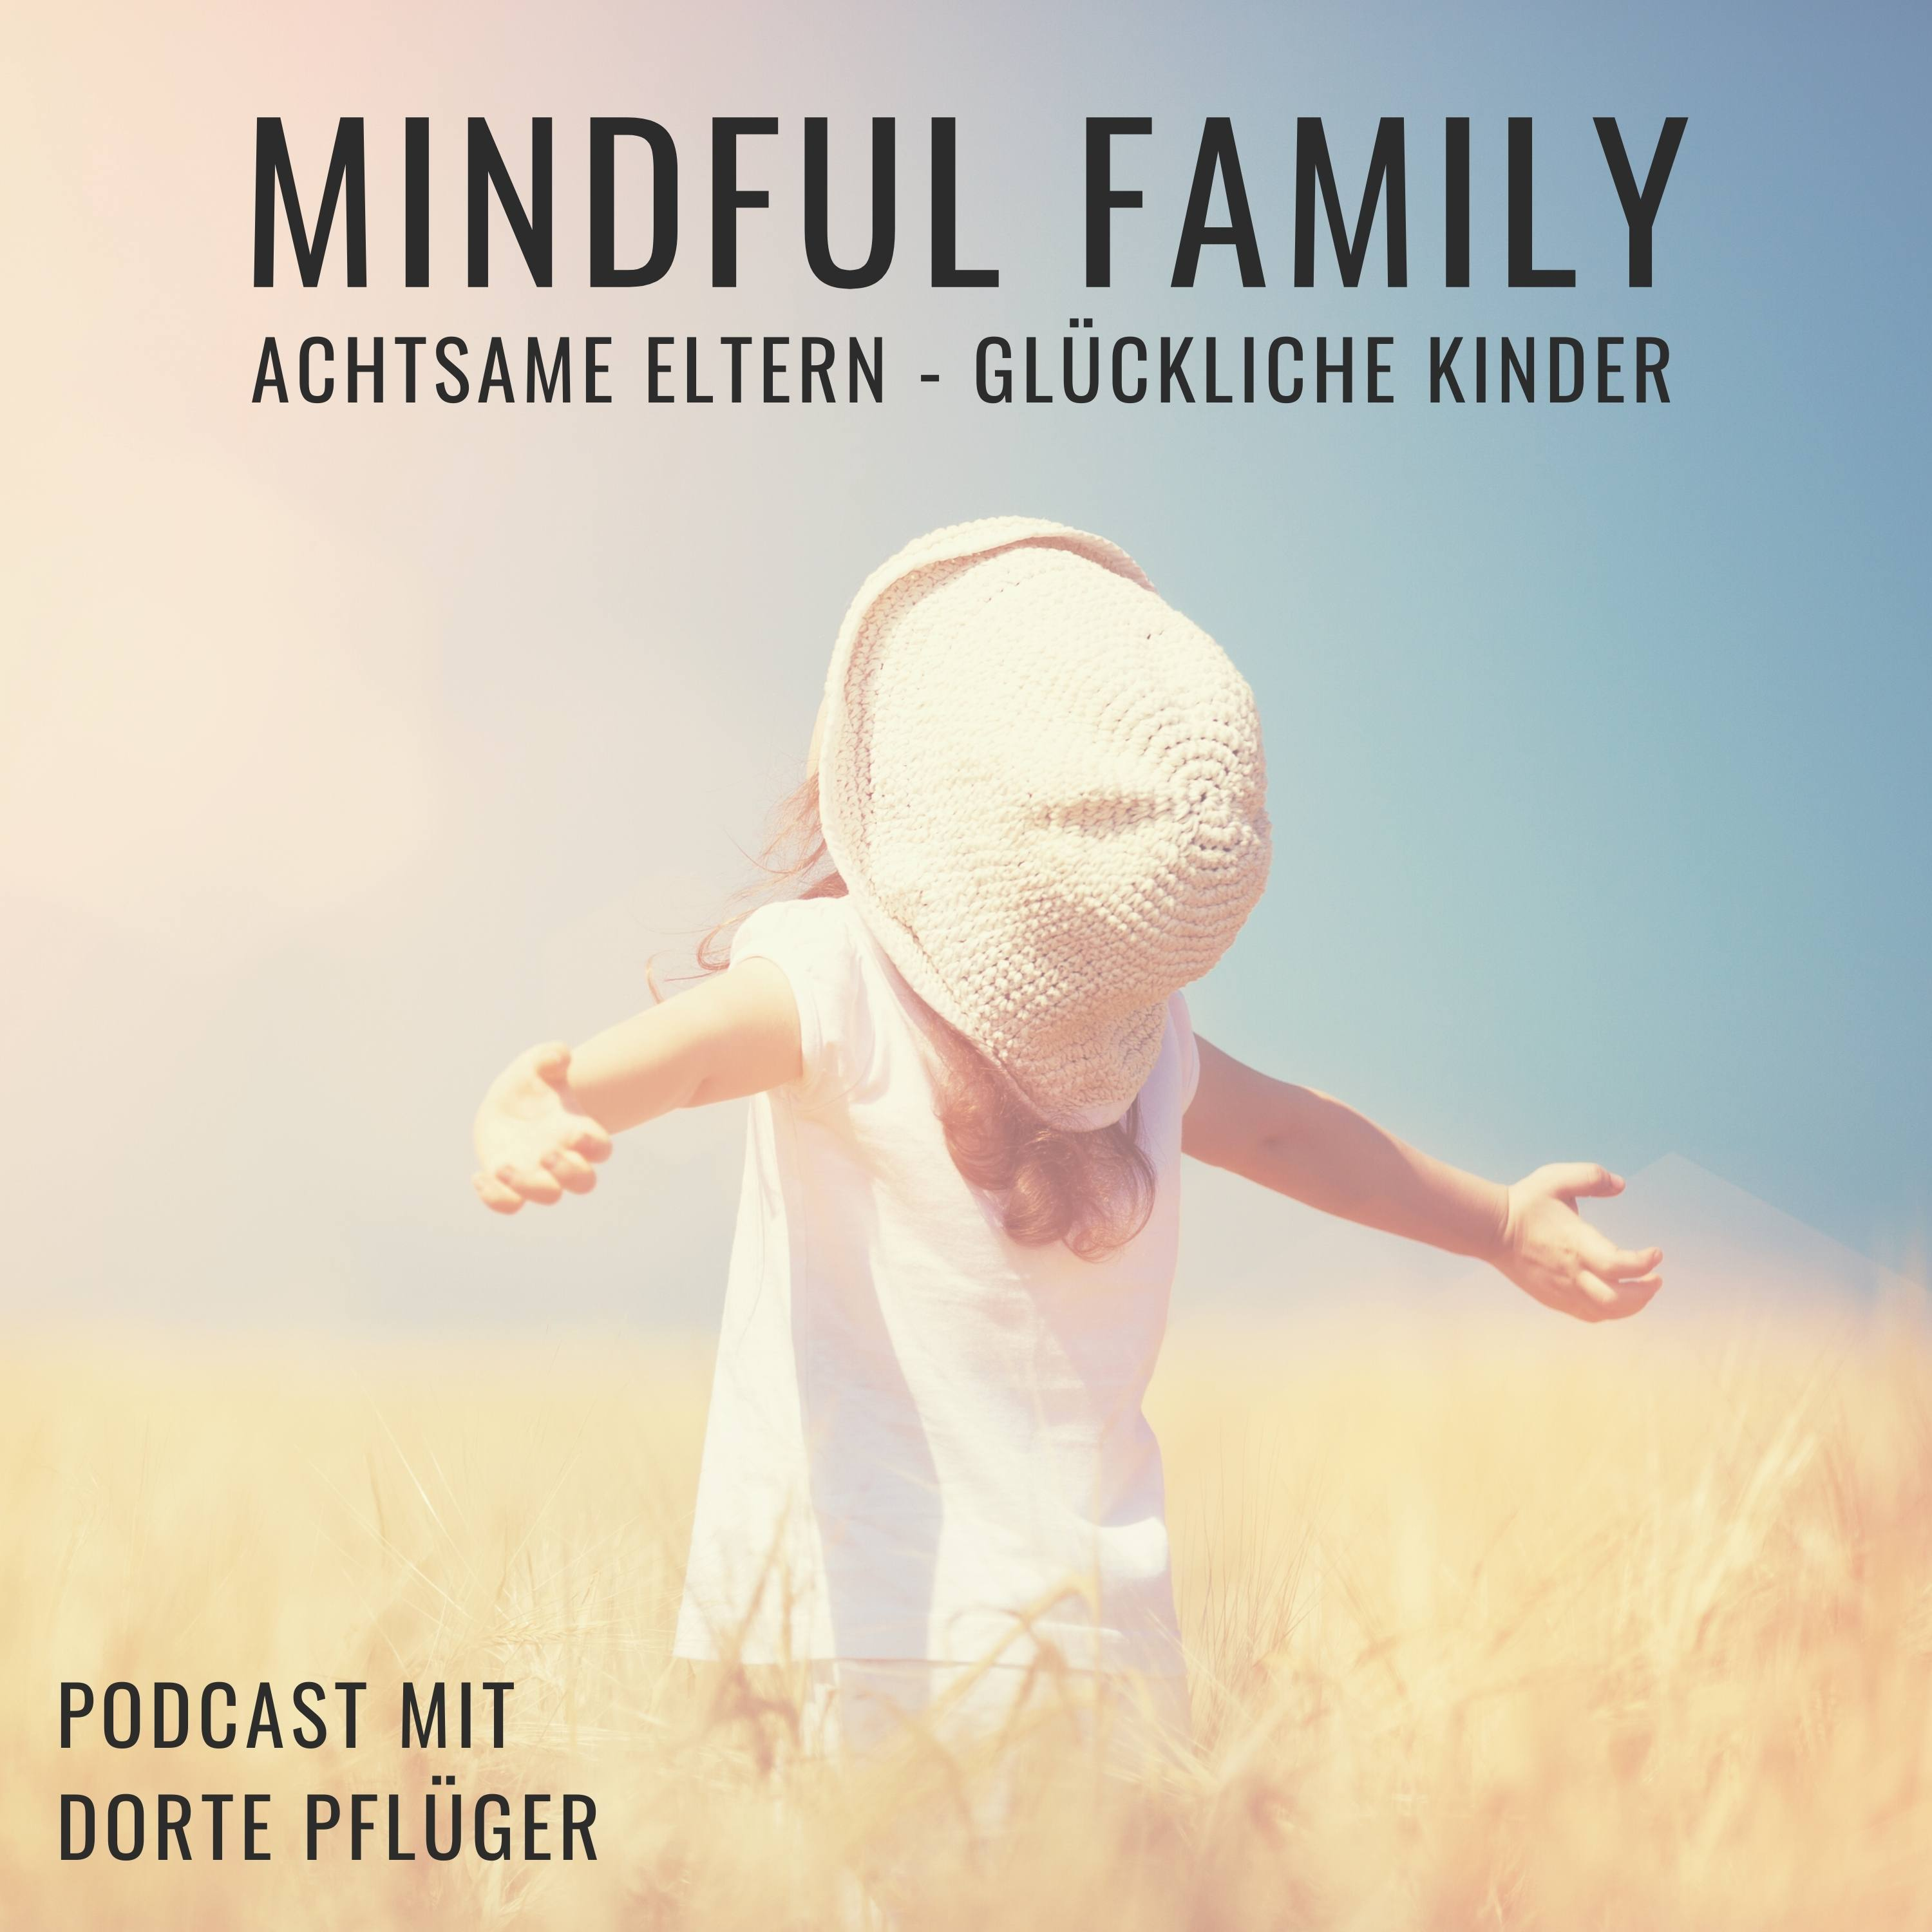 Mindful Family